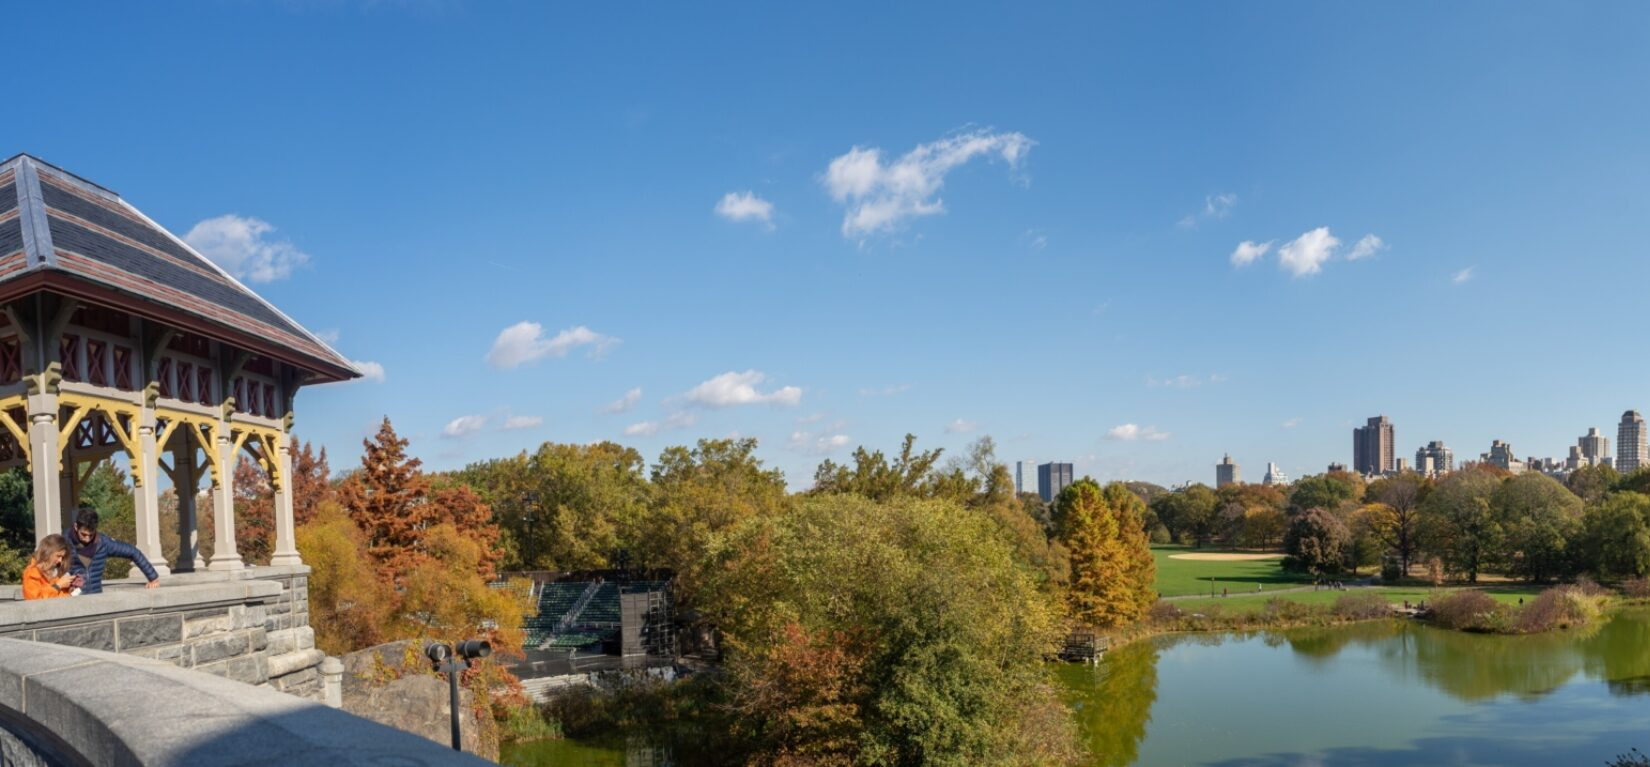 The view of the Great Lawn from the terrace of Belvedere Castle